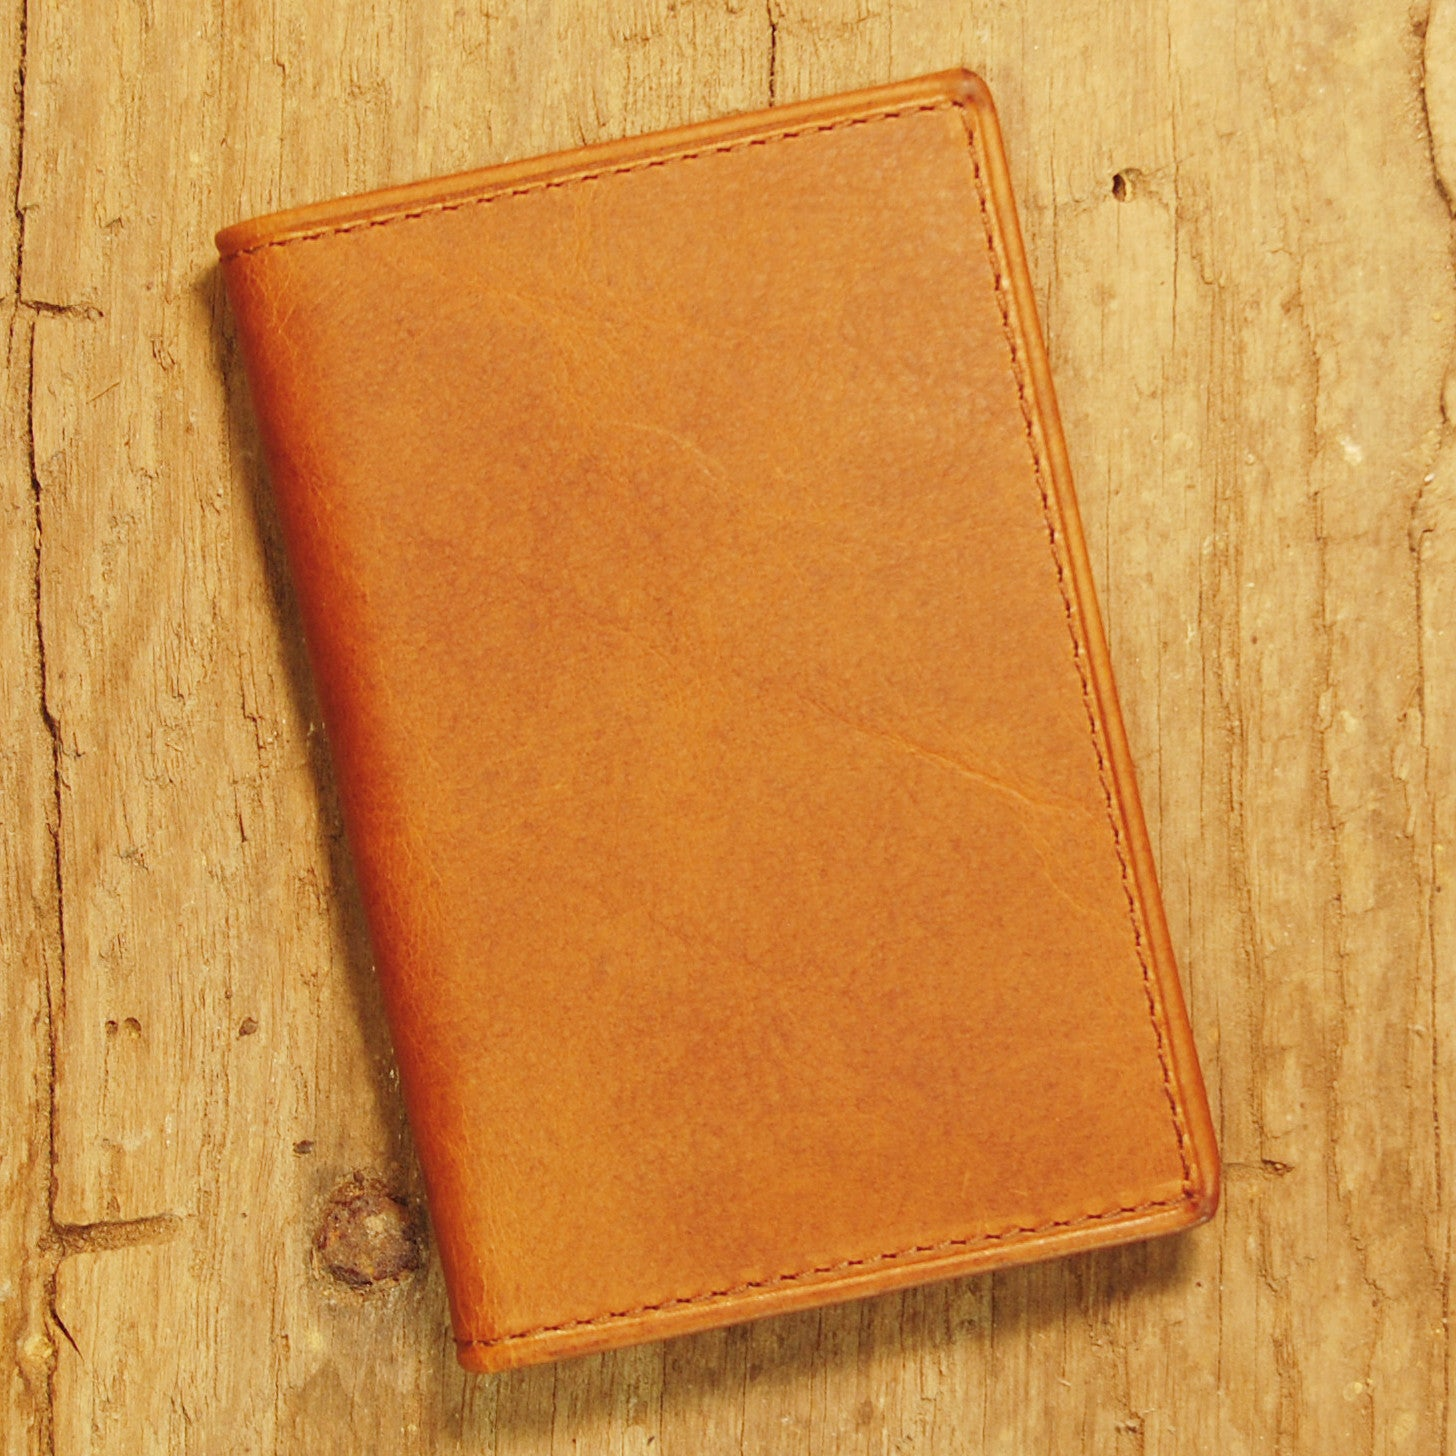 Dark's Leather Gusset Card Case in Bison Whiskey, Front